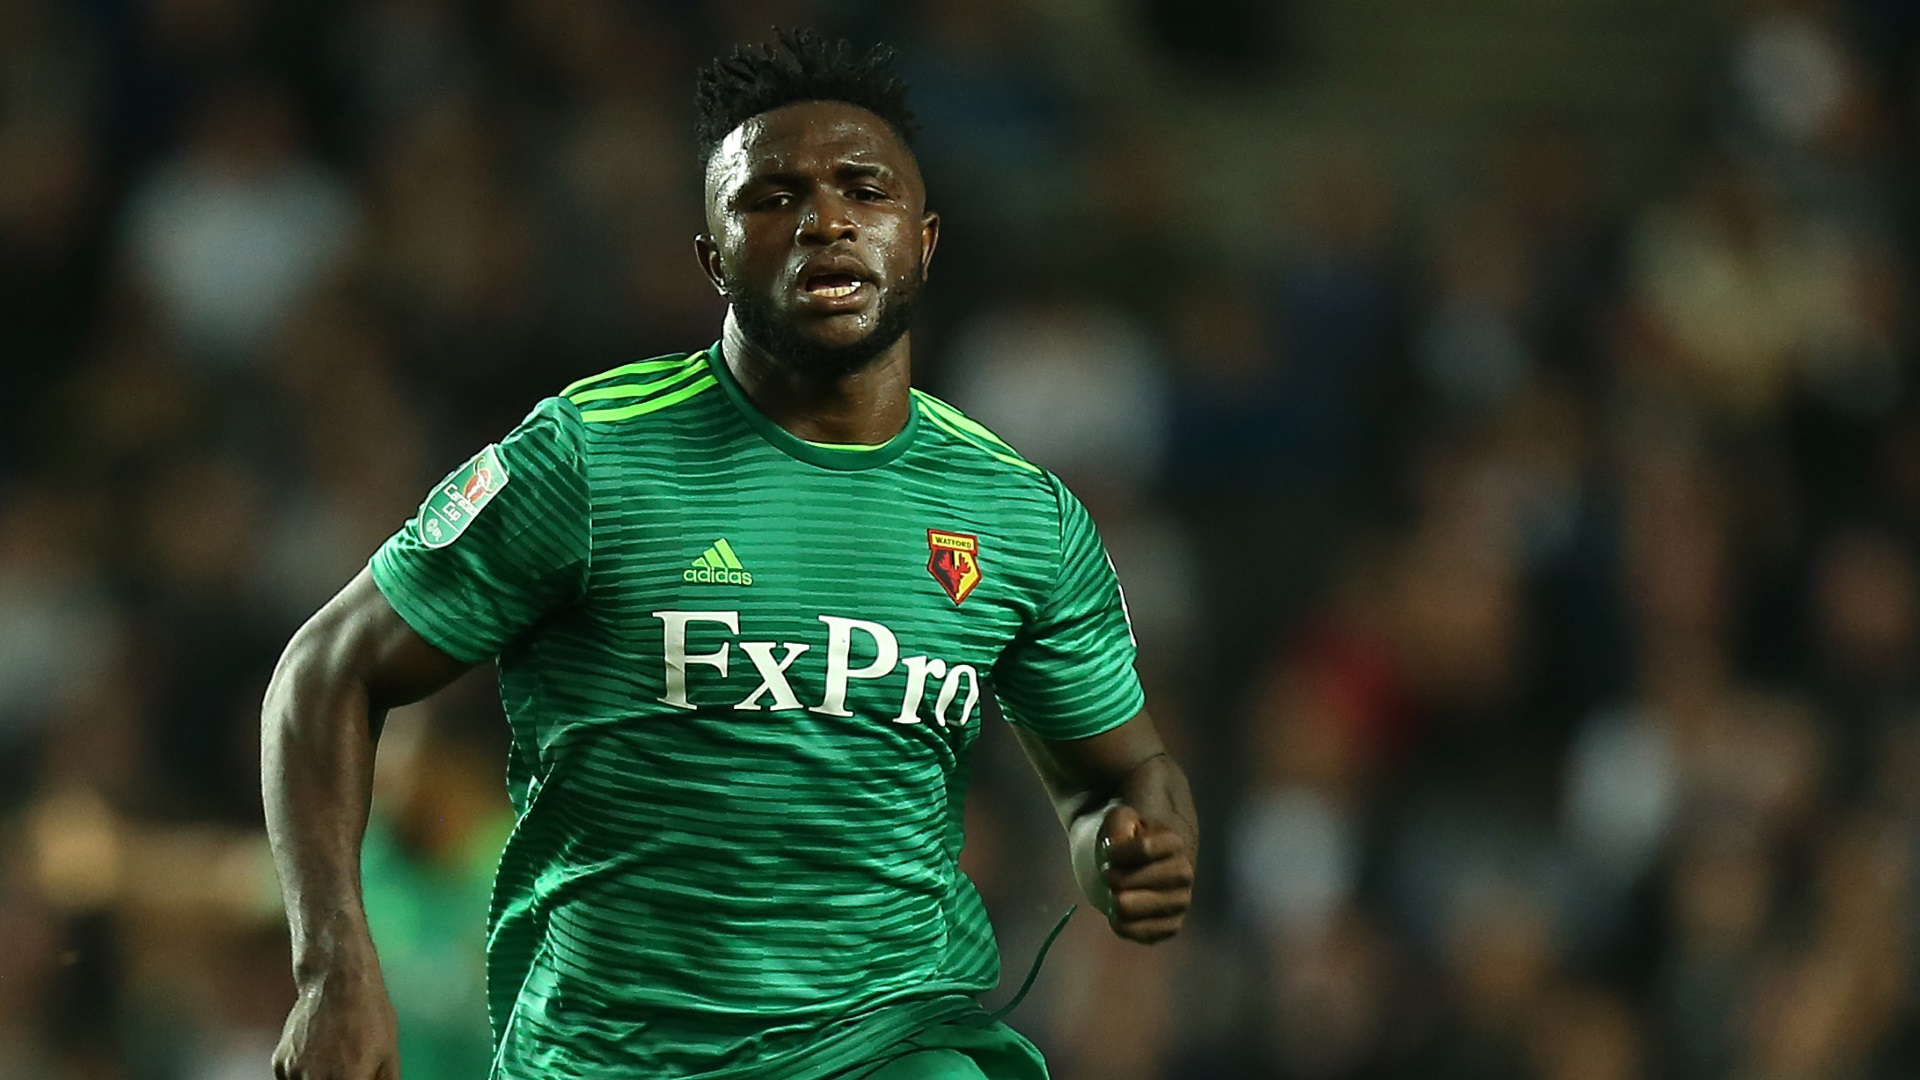 Watford celebrates Isaac Success at 23